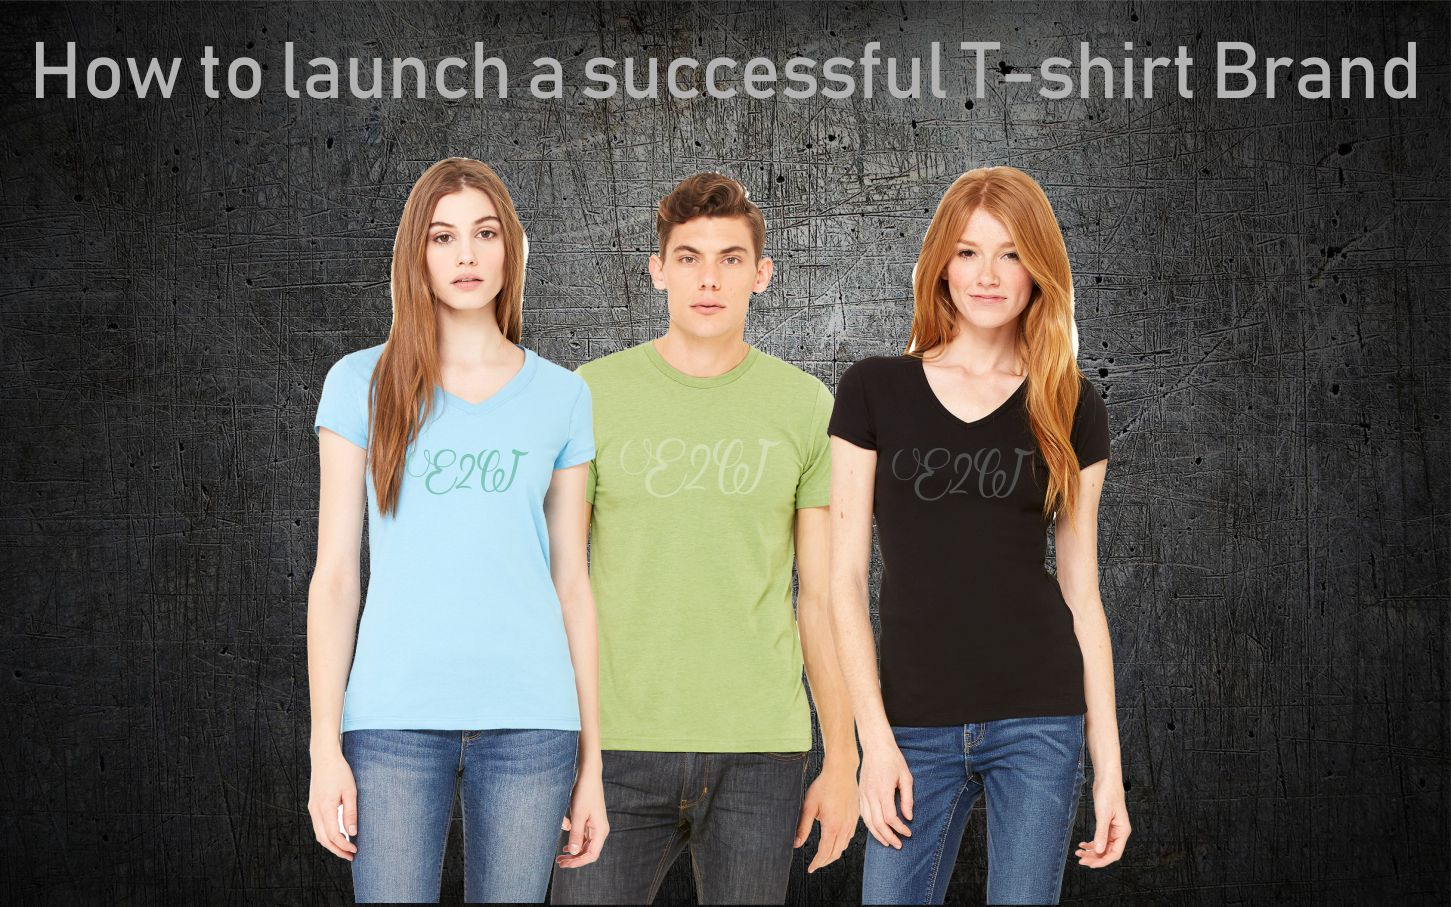 How to Launch a successful t-shirt brand